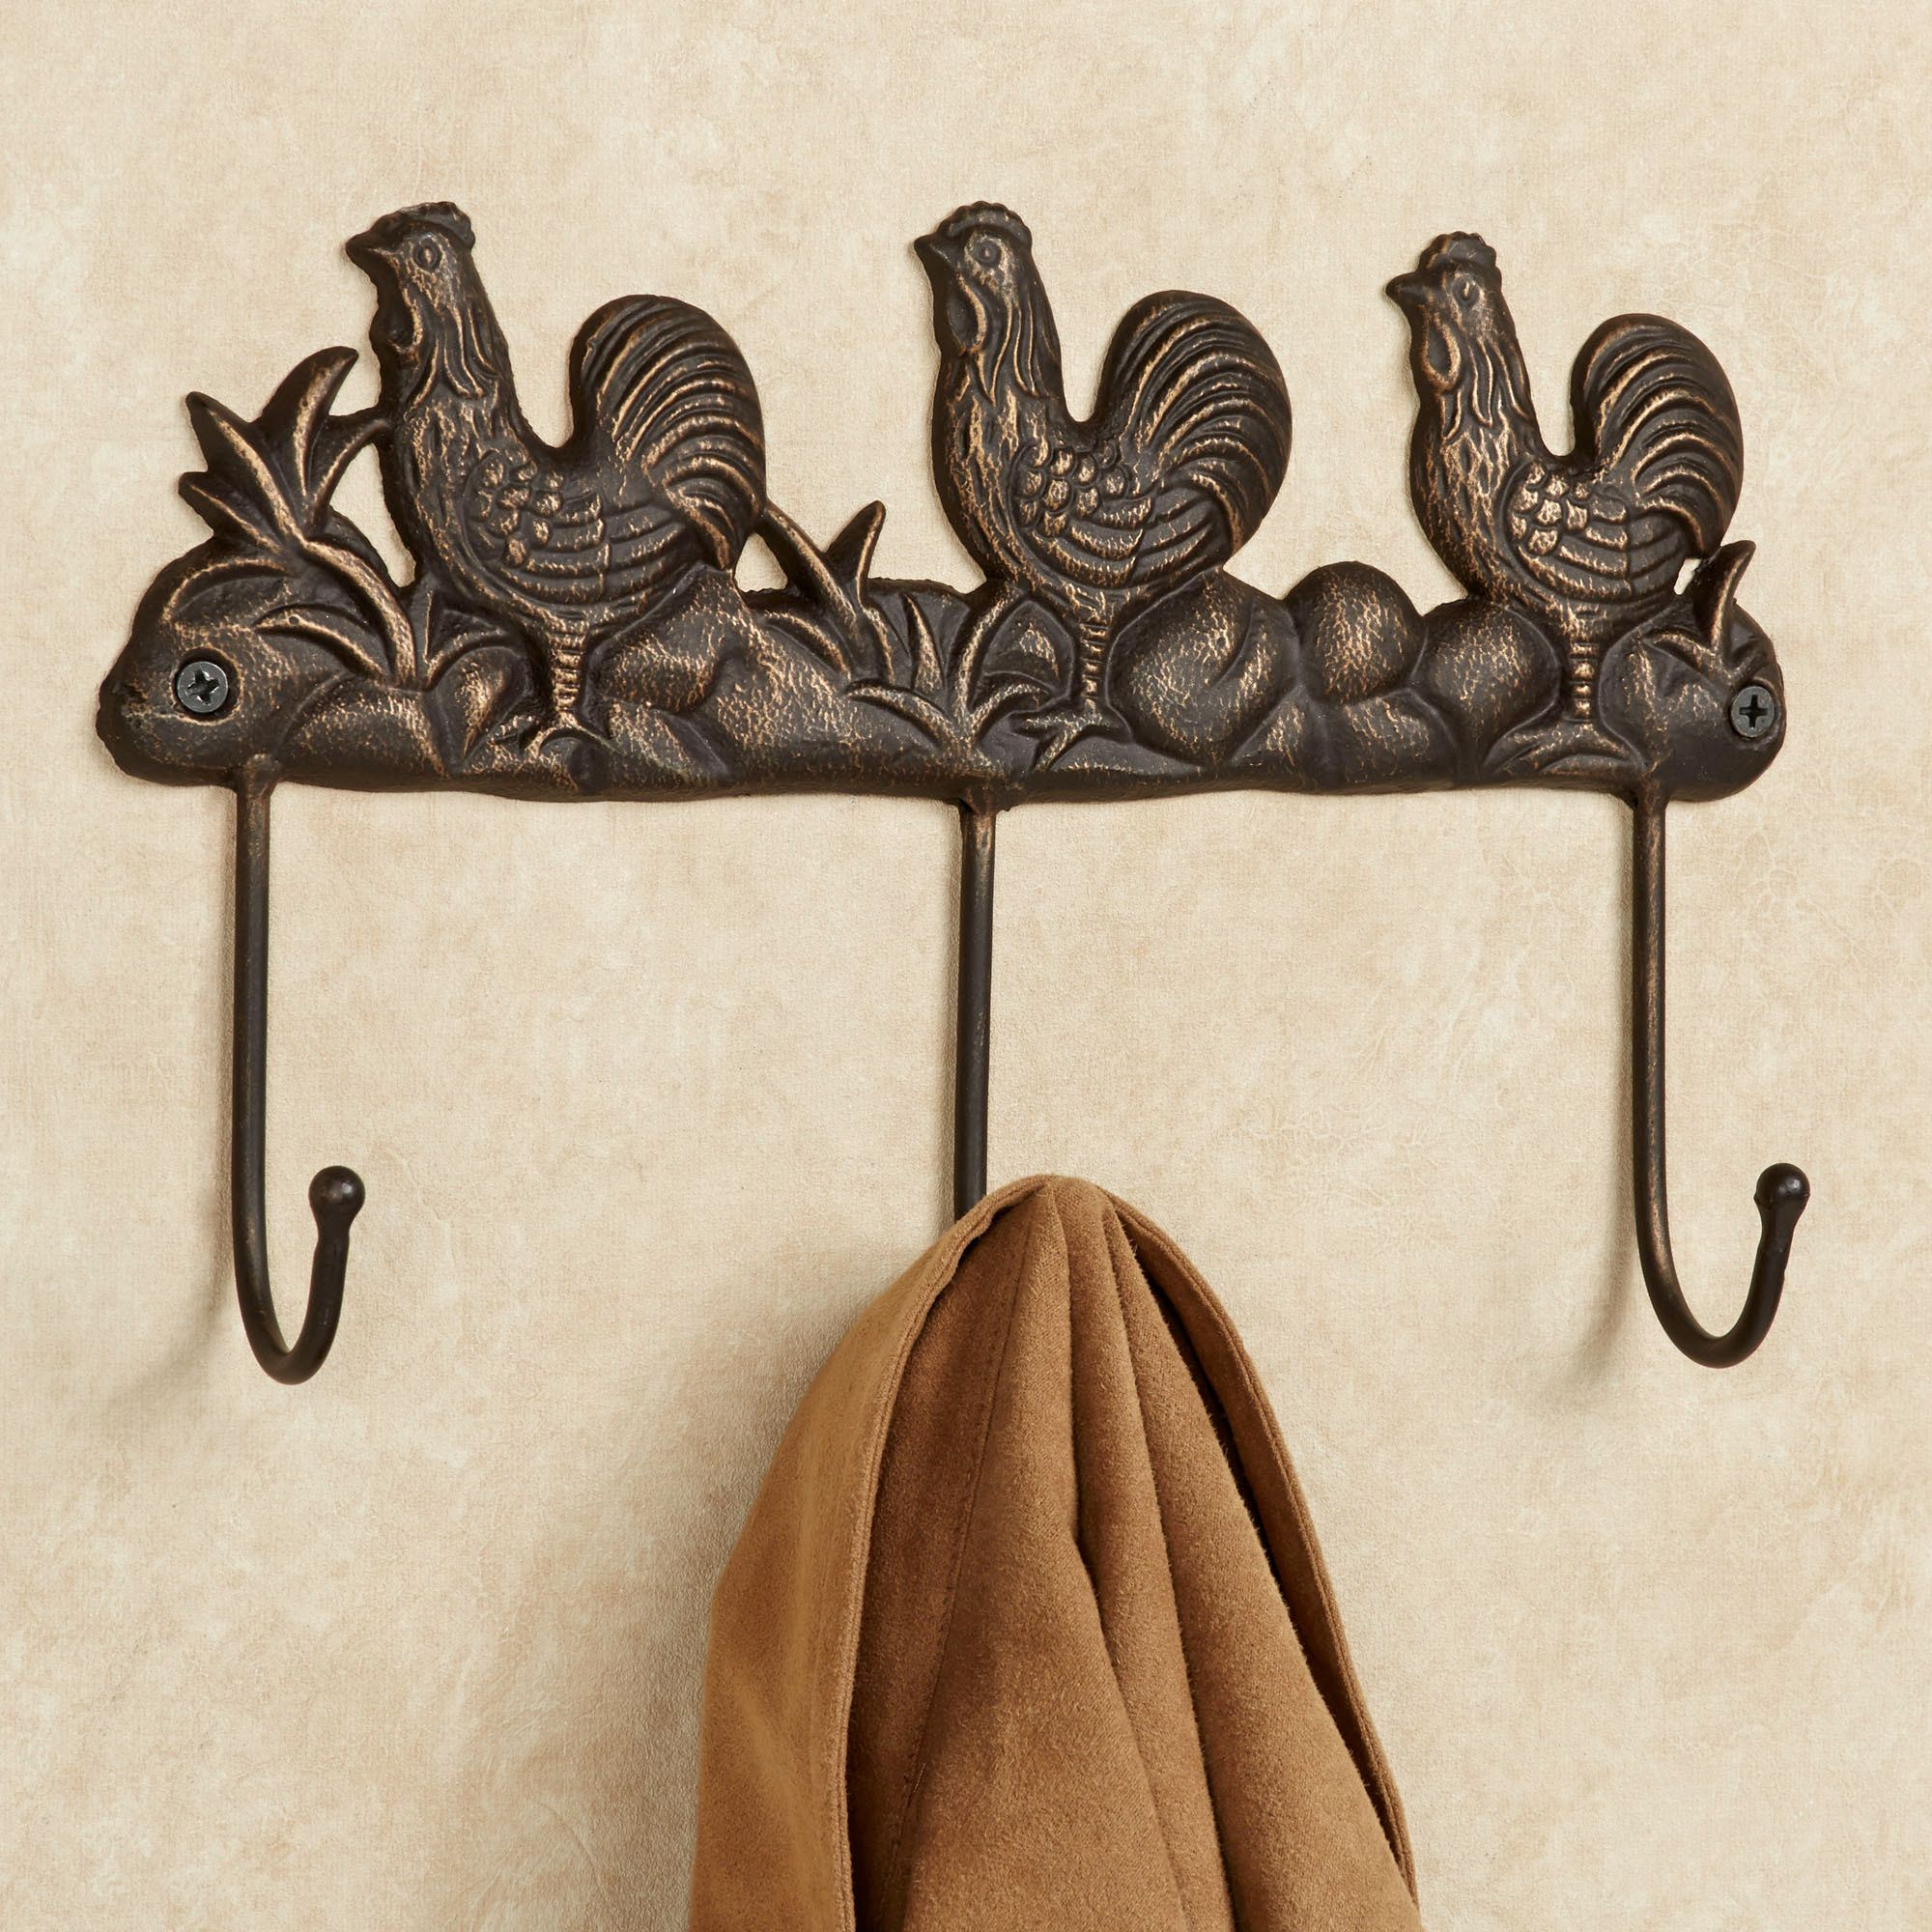 black coats decoration also coat make wrought your mounted and interior home to iron decorative hook hooks wall key for over bird rack hanging with